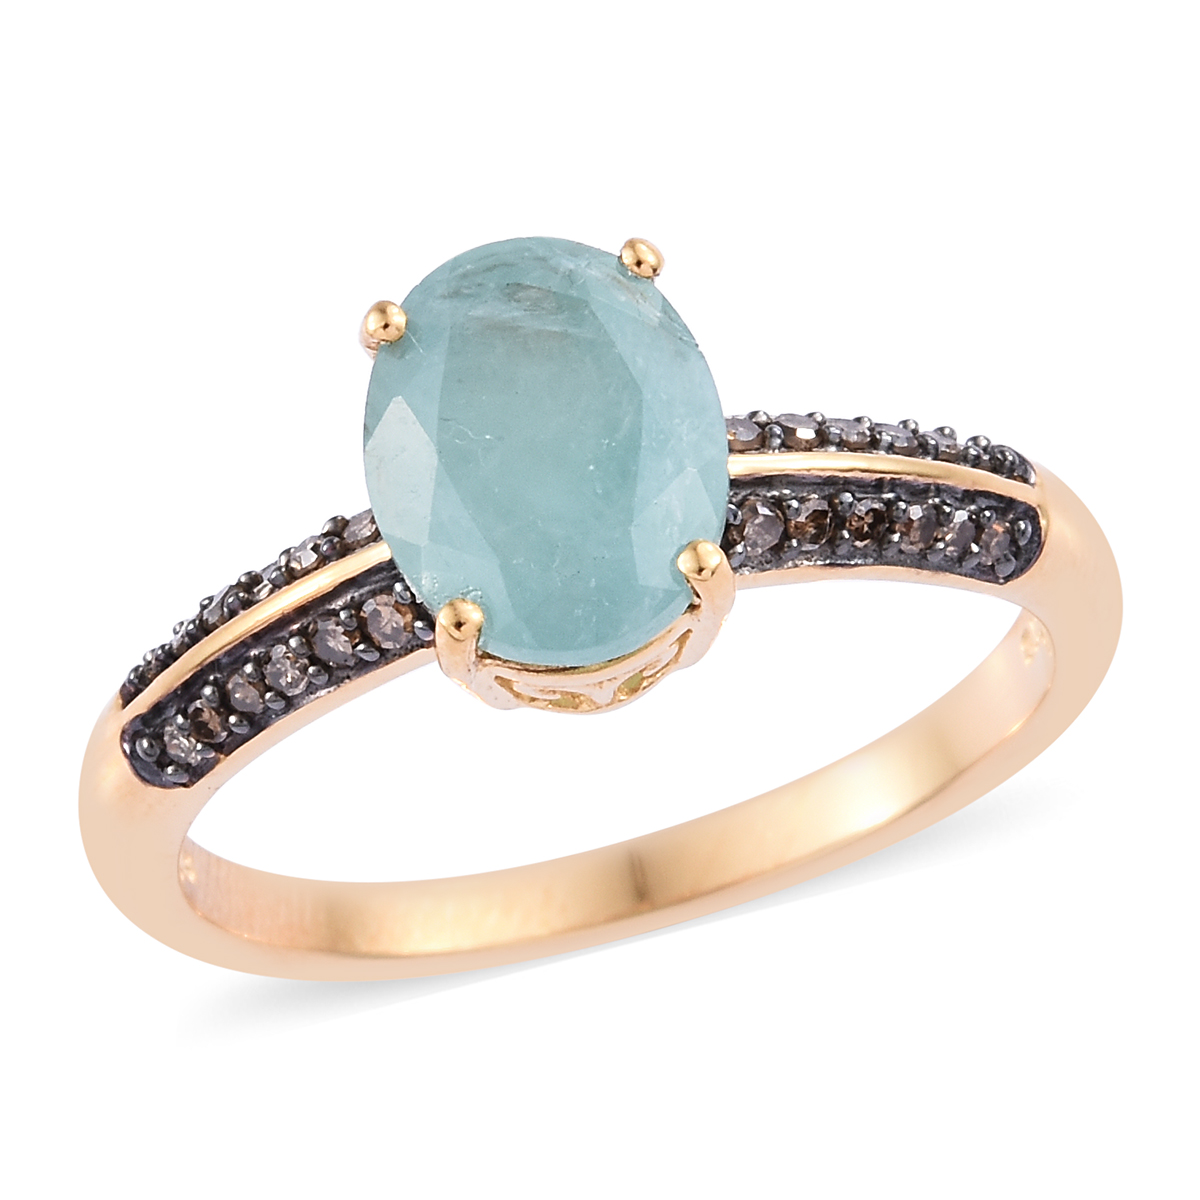 Grandidierite, Natural Champagne Diamond (0.20 ct) Ring in Black Rhodium & Vermeil YG Over Sterling Silver (Size 11.0) 2.80 ctw